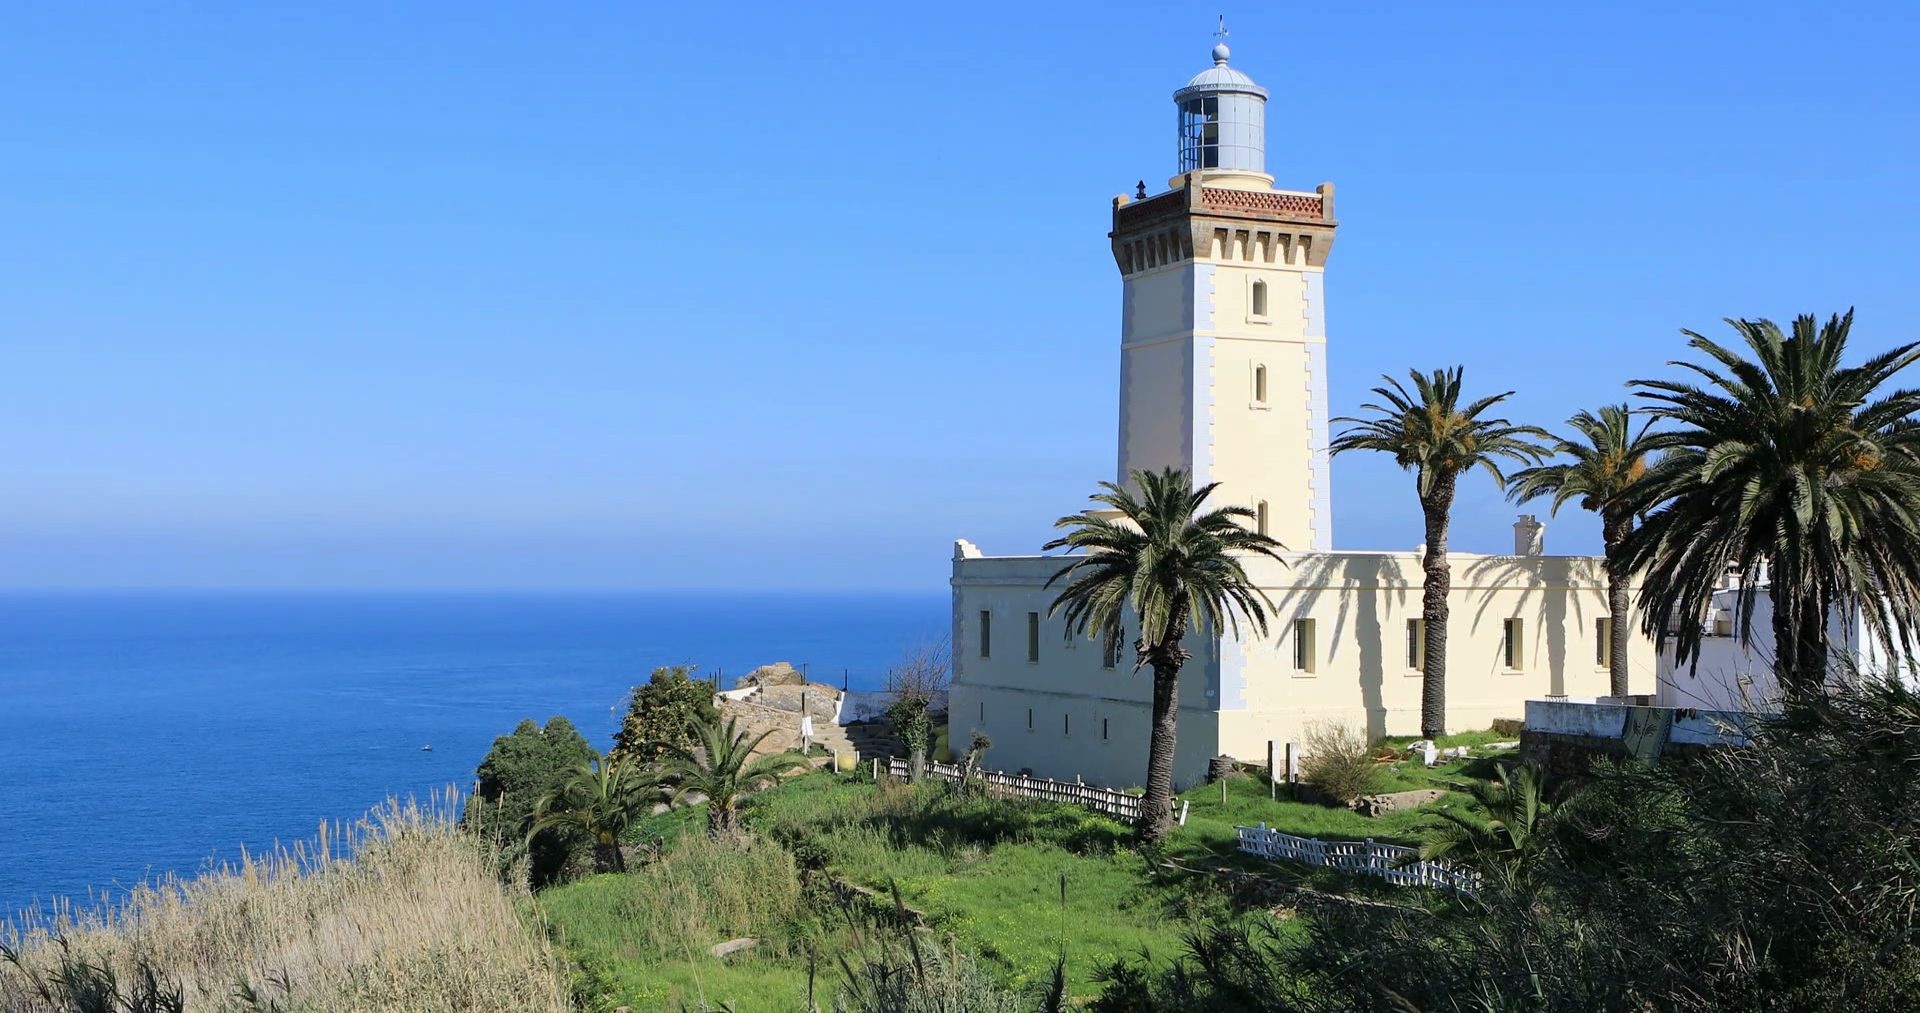 Cap Spartel Lighthouse Tangier and the Mediterranean, 4K UltraHD The Phare Cap Spartel Lighthouse near Tangier, Morocco ...